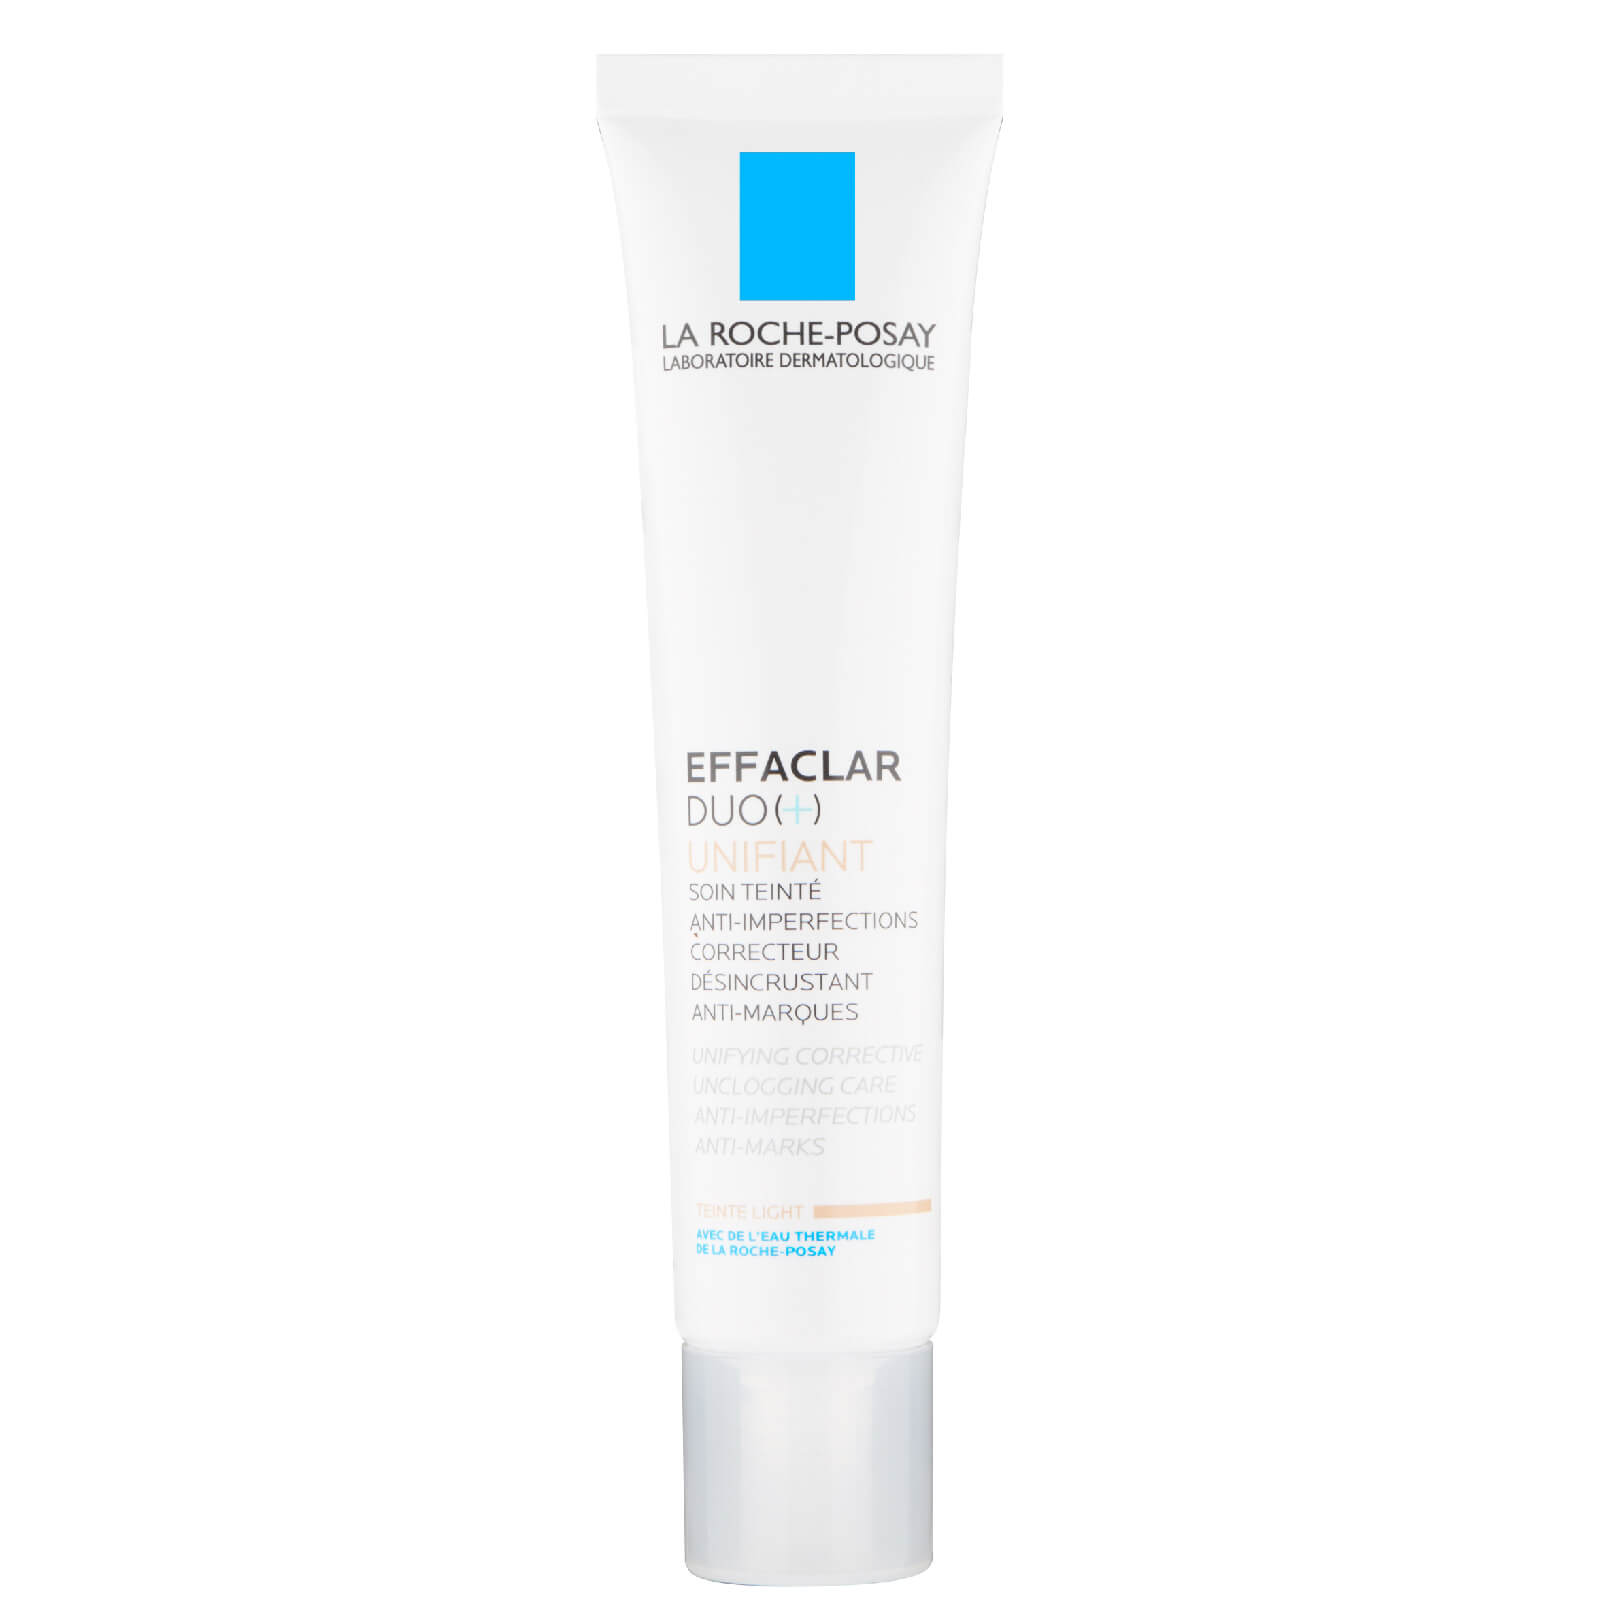 La Roche Posay Effaclar Duo+ Light Shade